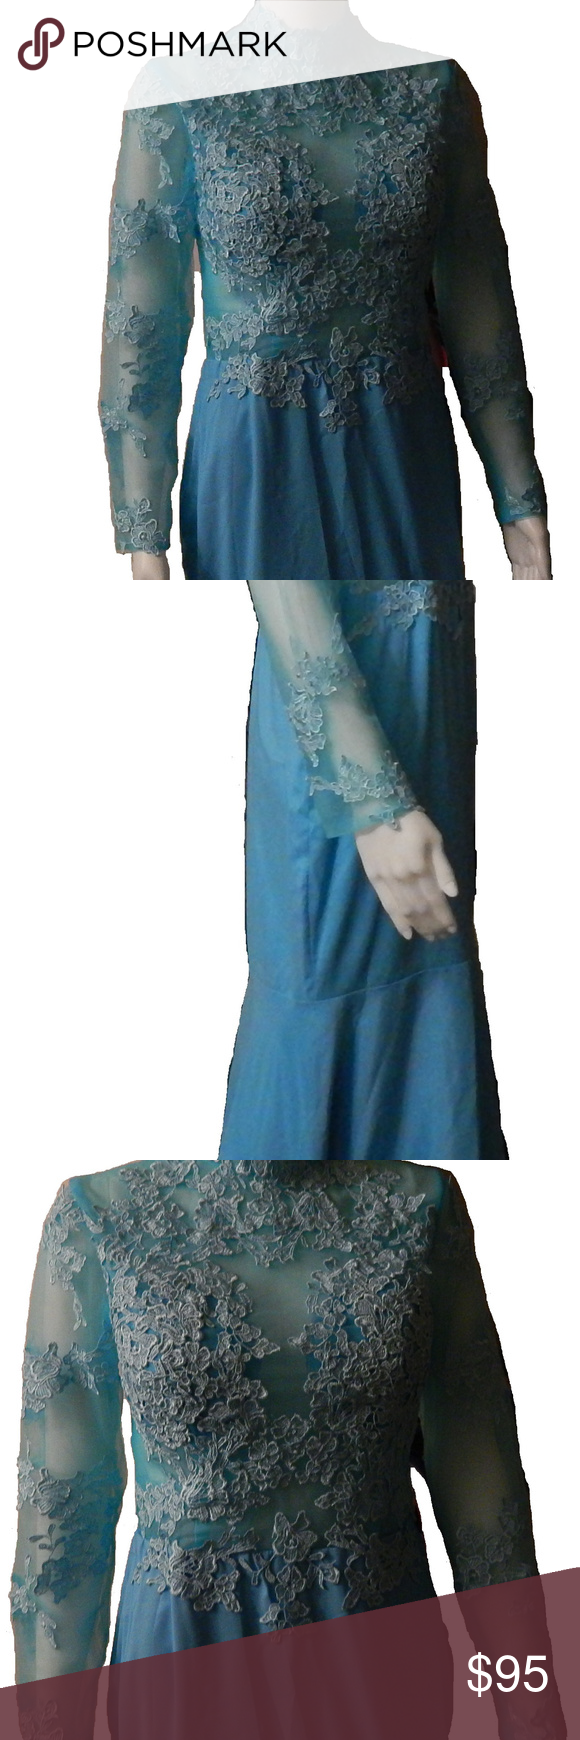 New aqua color sheer lace prom dress size nwt aqua color